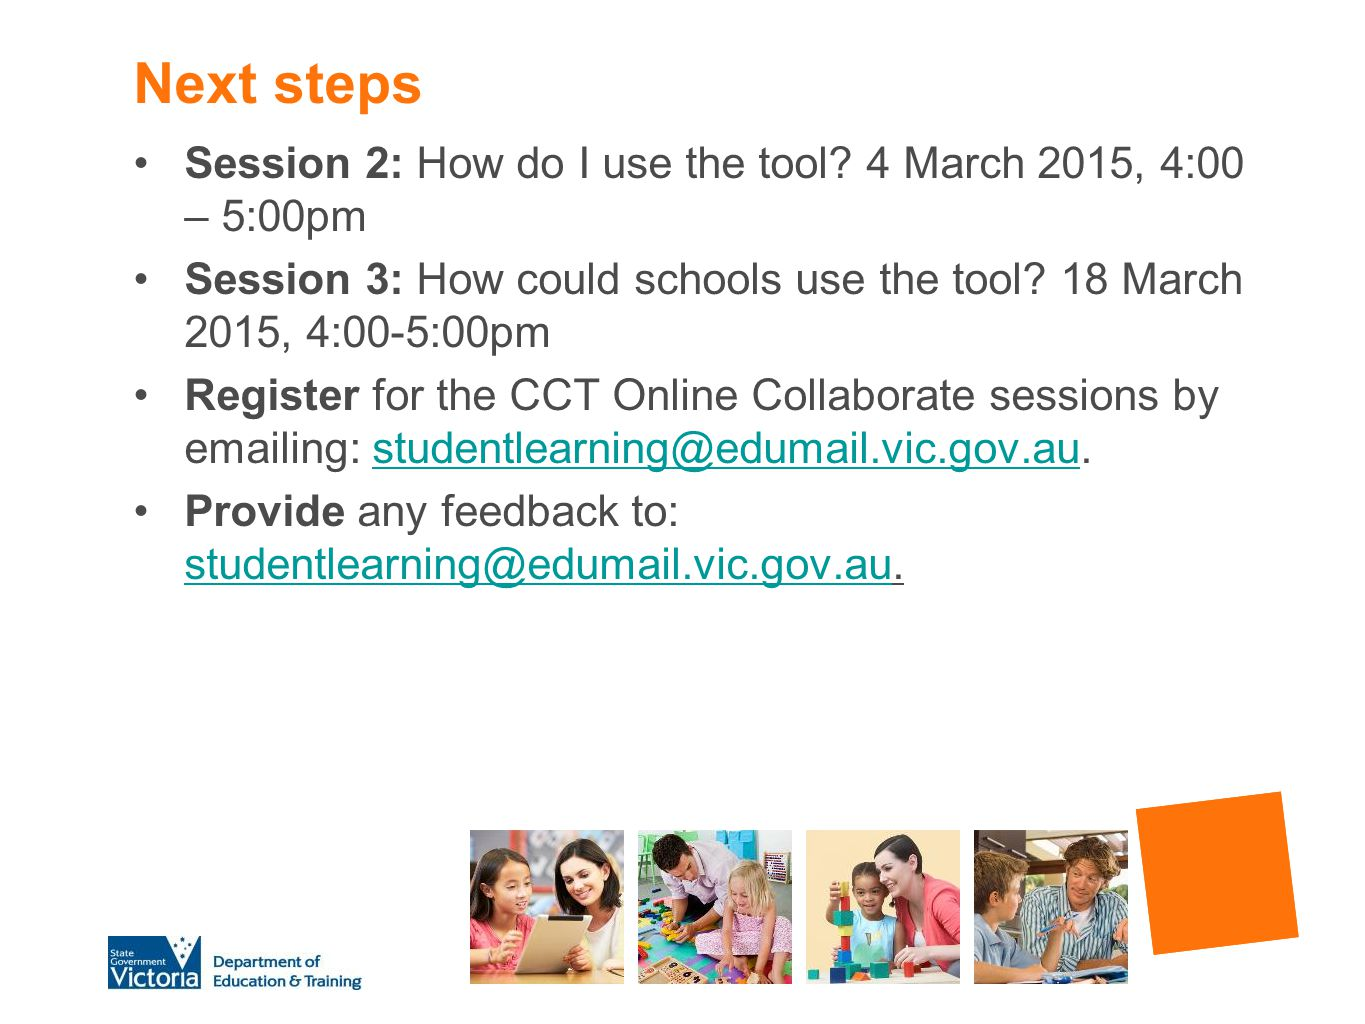 Next steps Session 2: How do I use the tool 4 March 2015, 4:00 – 5:00pm. Session 3: How could schools use the tool 18 March 2015, 4:00-5:00pm.